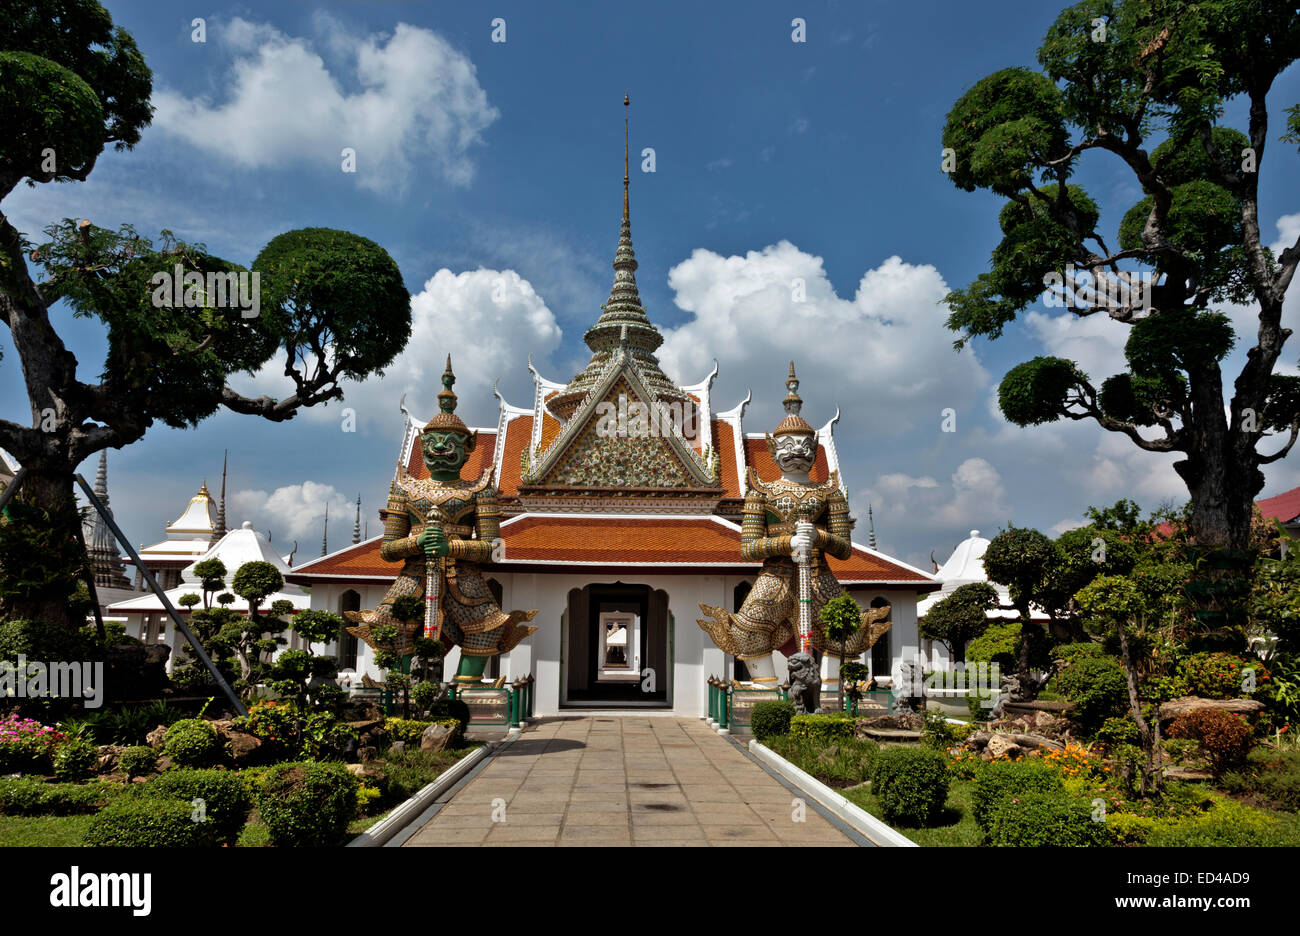 THAILAND - Carefully pruned trees and bushes and the Sahat Decha (White Stone Giant) and Thotsakan (Green Giant) - Stock Image